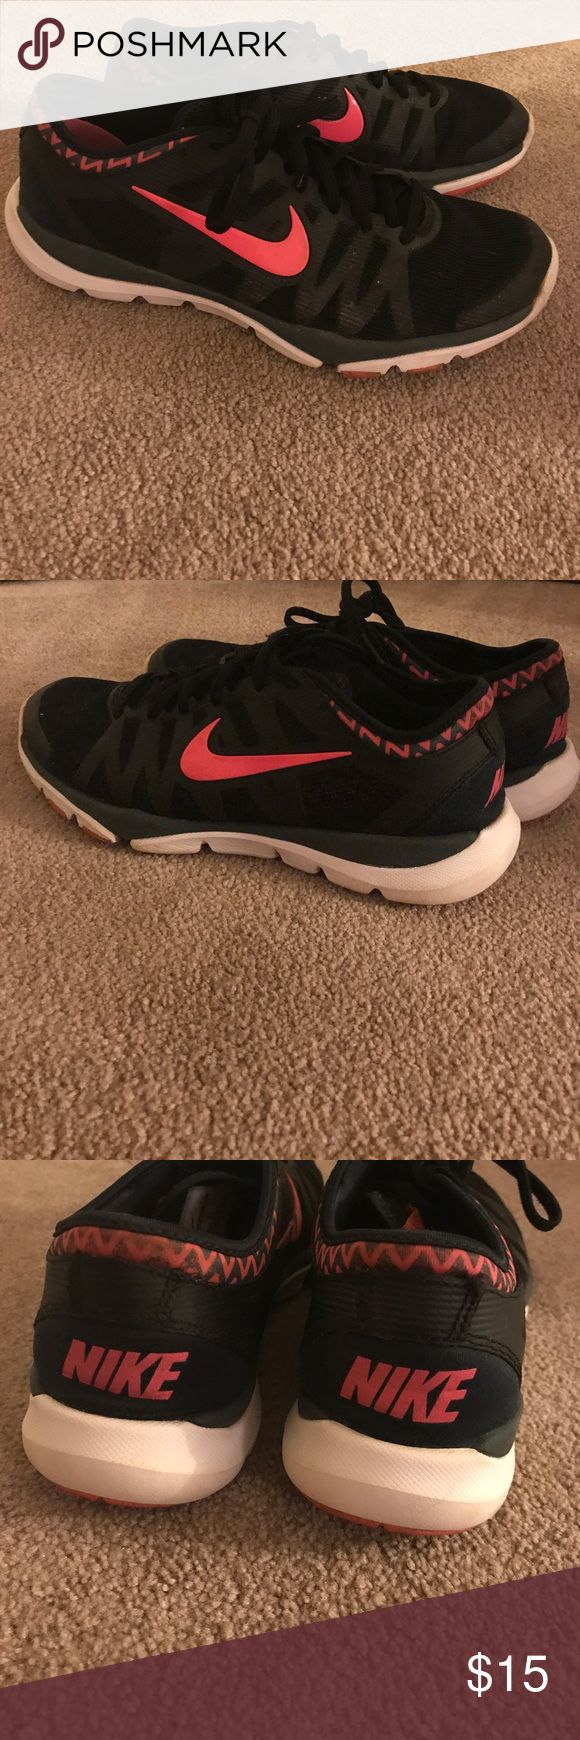 Nike Training Chevron Shoe 8.5 Used but in good condition Nike Shoes Sneakers